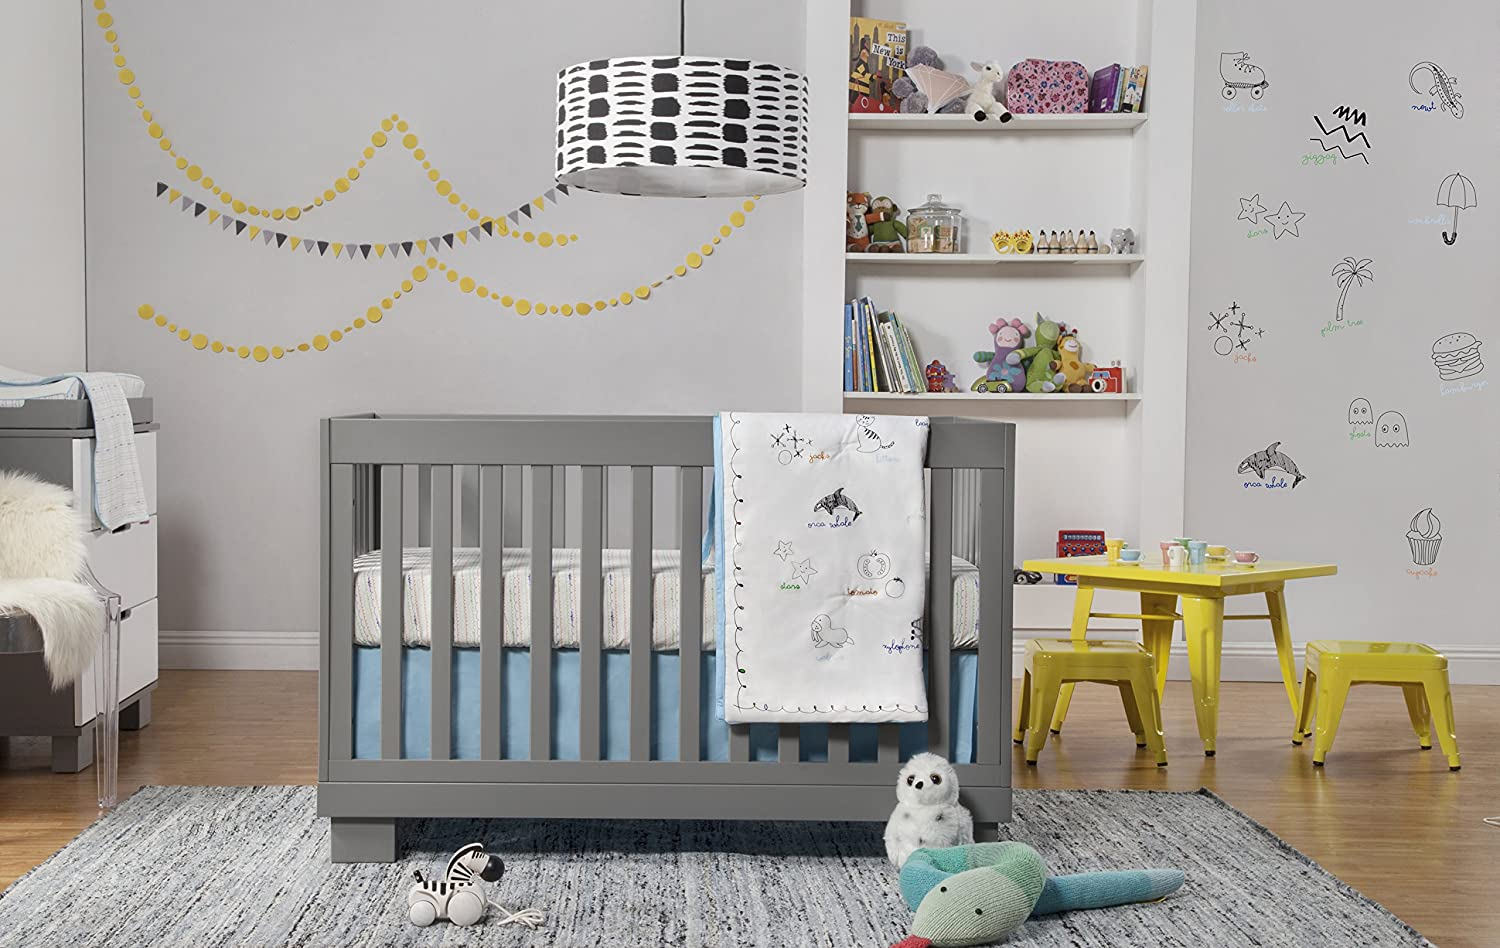 amazoncom  babyletto modo in convertible crib with toddler bedconversion kit grey  baby. amazoncom  babyletto modo in convertible crib with toddler